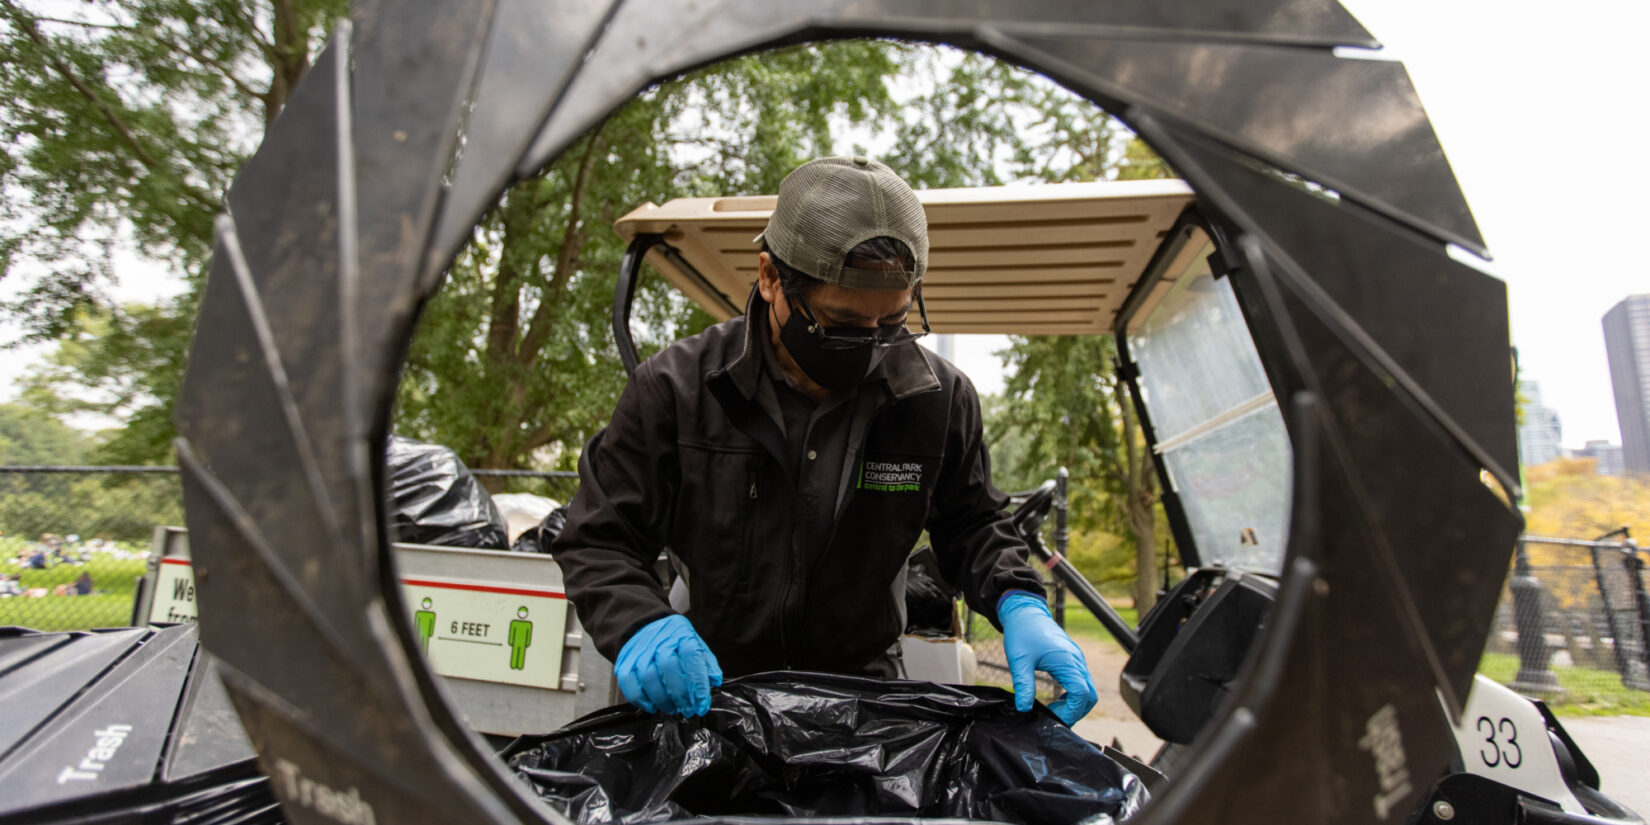 Staff member Danila Maturan photographed through the open lid of a trash can.